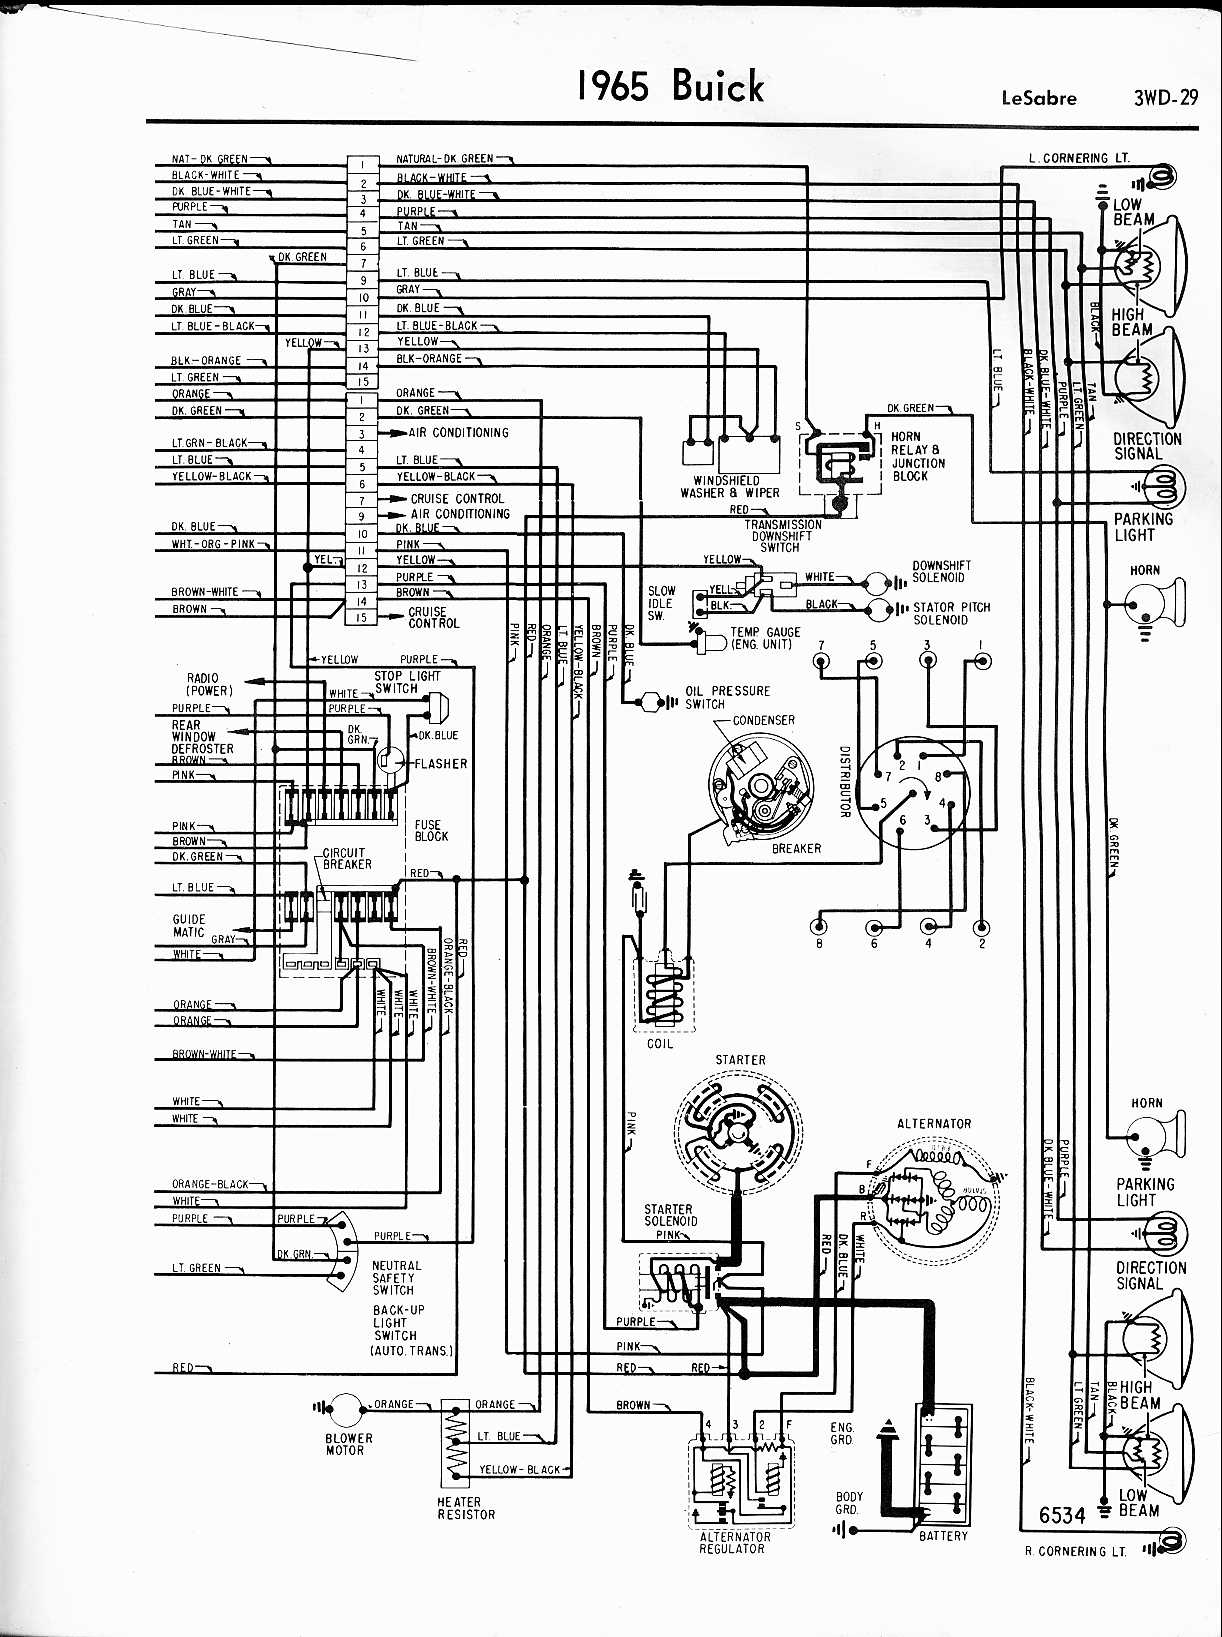 Wiring Diagram 98 Buick Lesabre - Reading industrial wiring ... on fan switch wiring diagram, turn signal switch wiring diagram, ignition switch wiring diagram, key switch wiring diagram, heater switch wiring diagram, headlight switch wiring diagram,